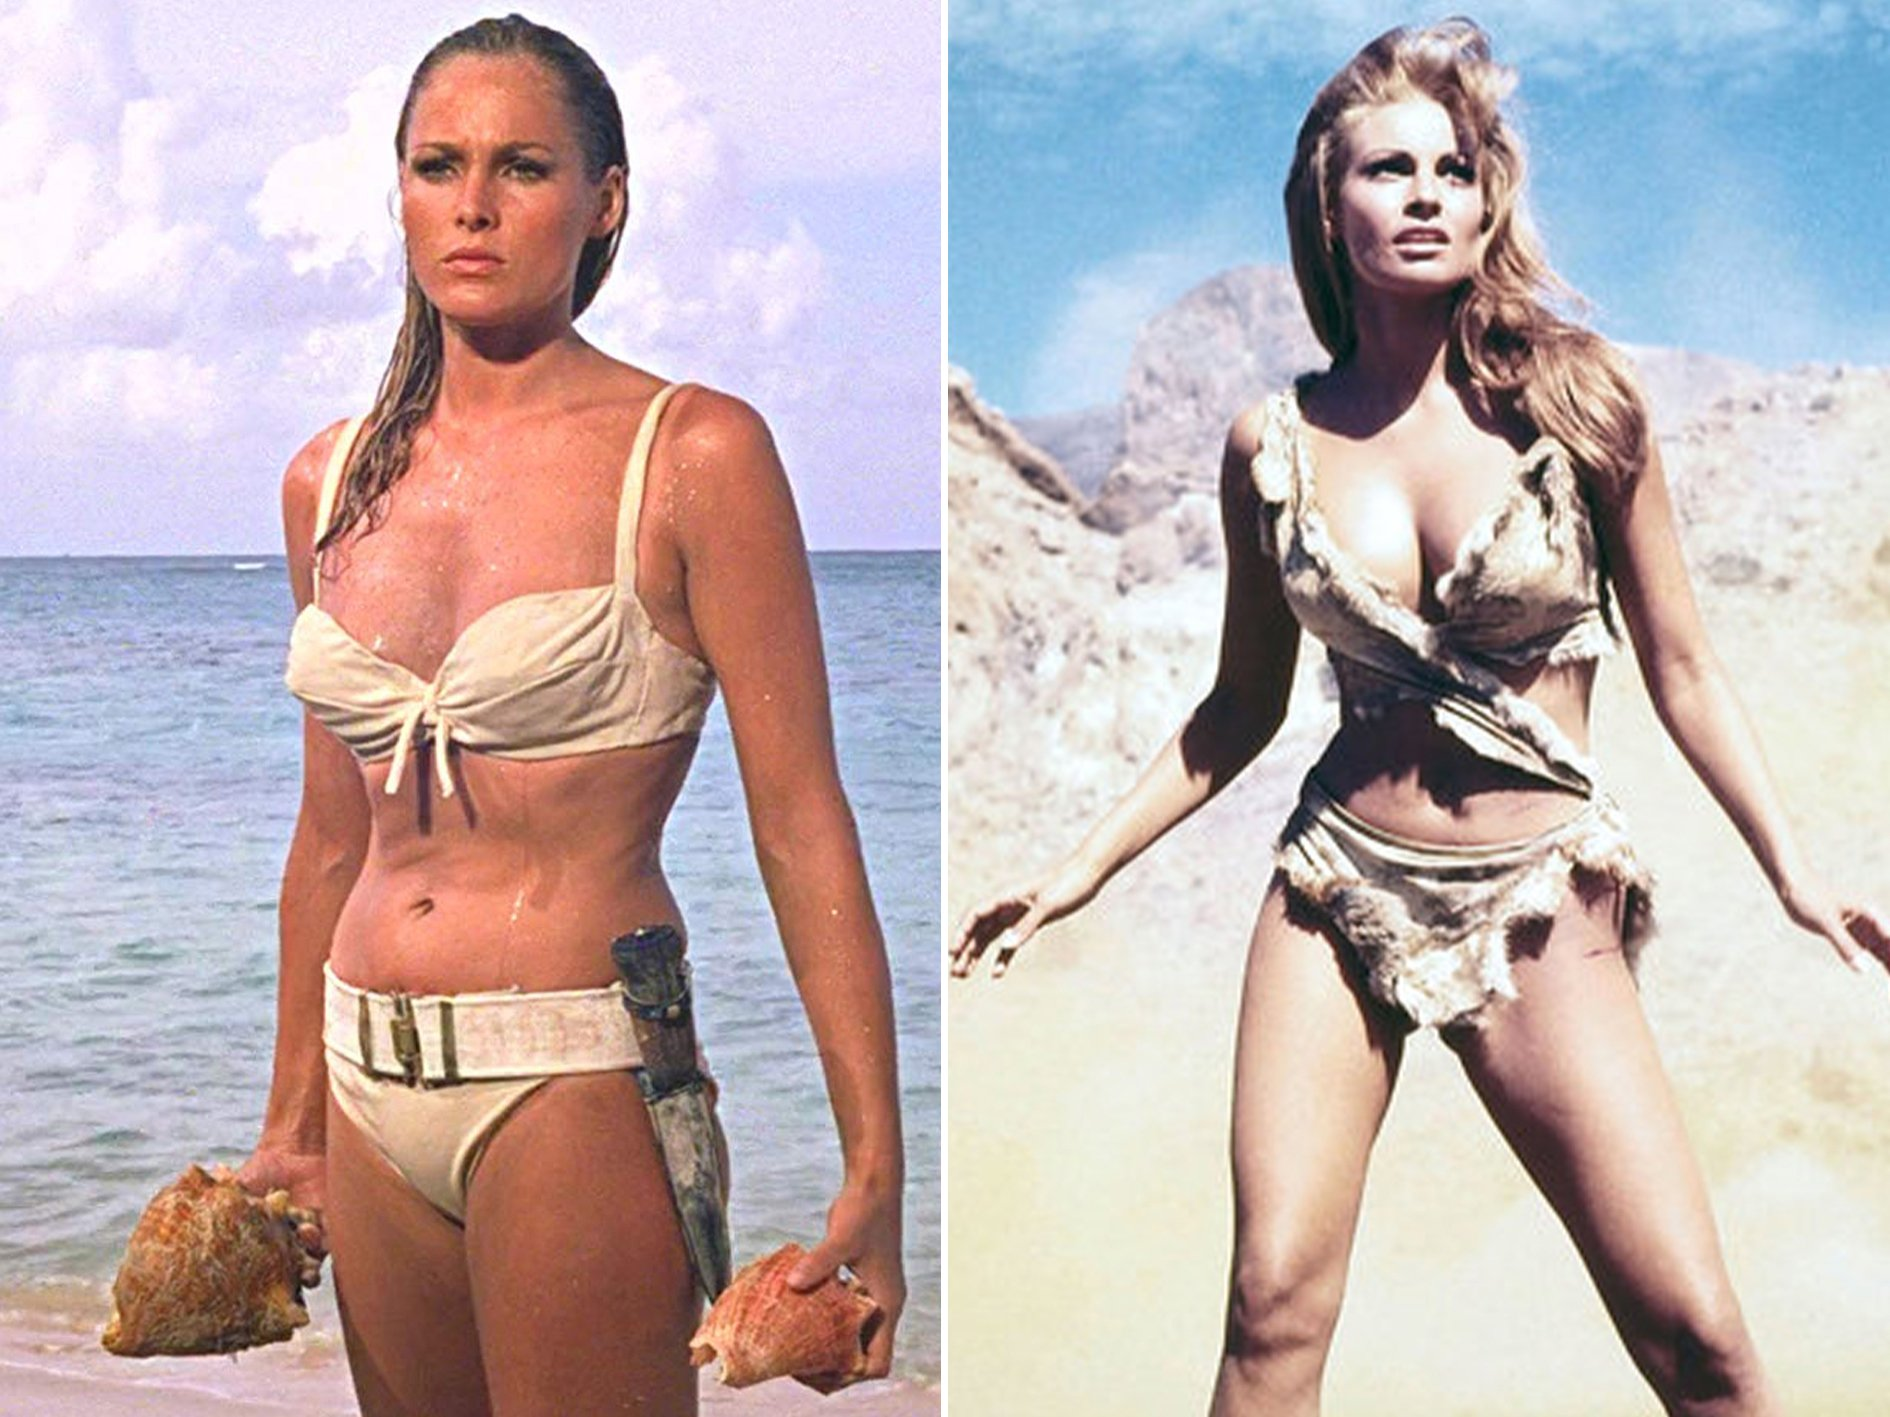 Ursula Andress Raquel Welch DeLorean: The Strange Story Behind The Iconic 80s Sports Car And Its Creator